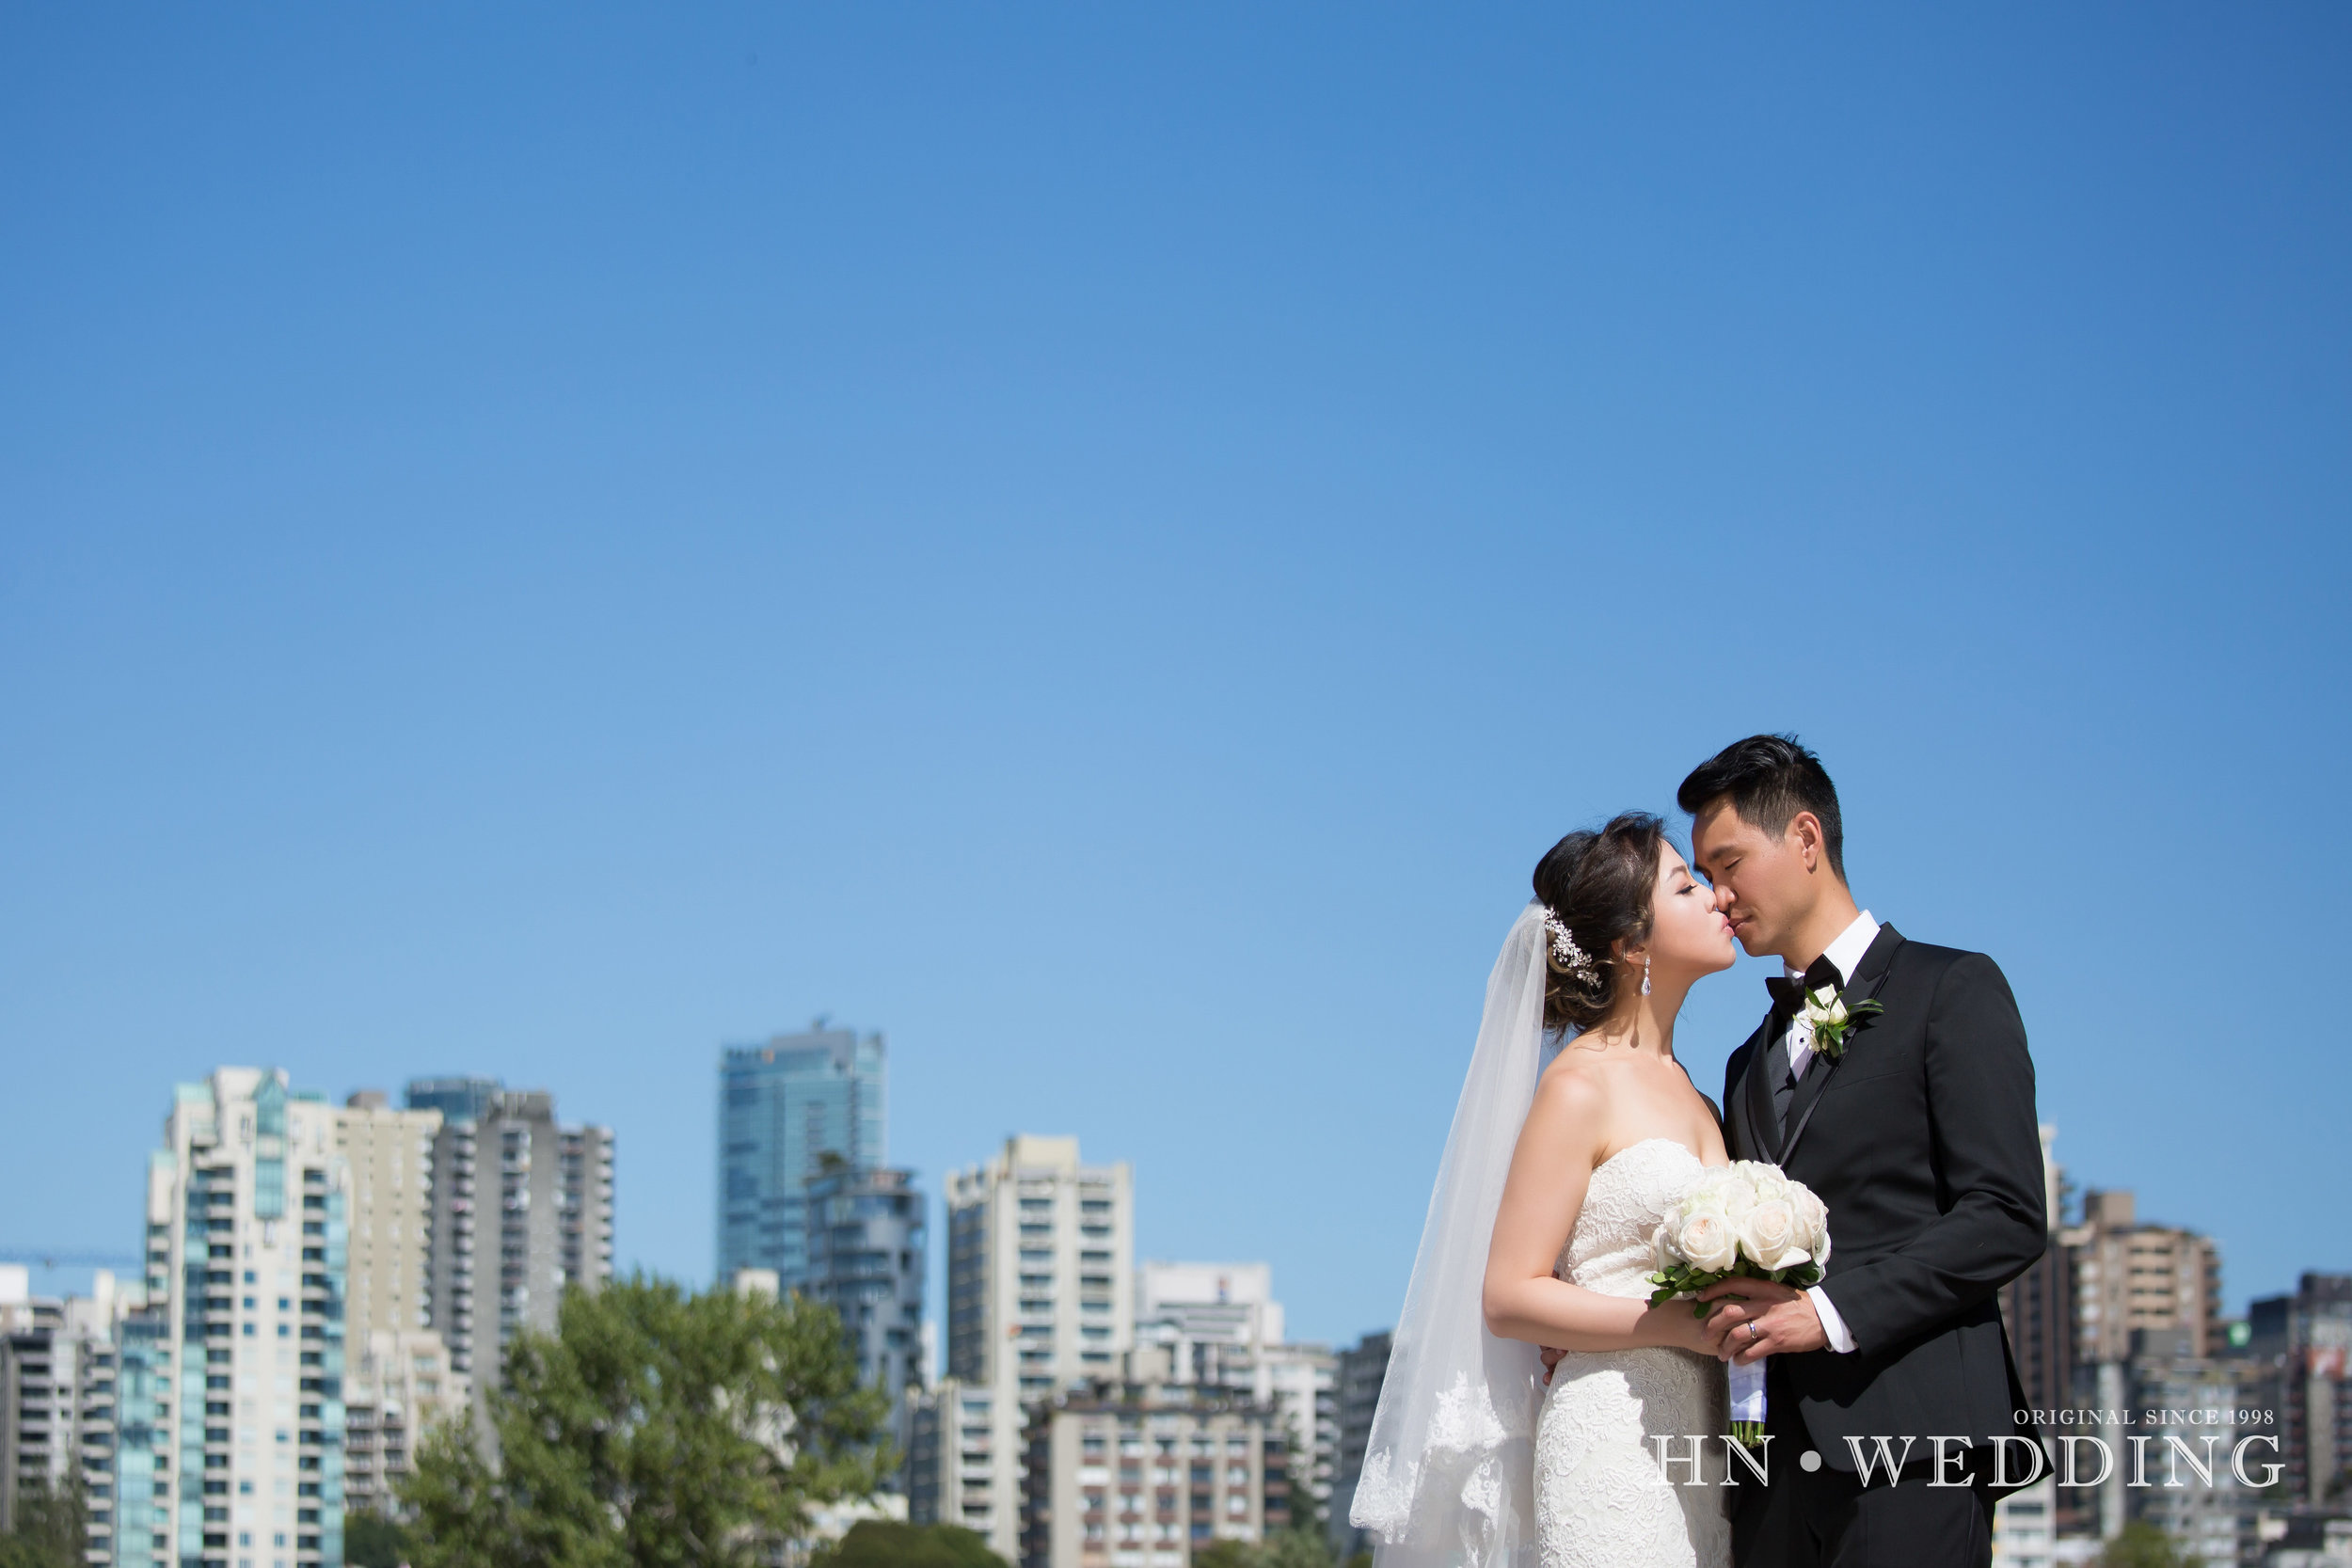 HNwedding-weddingday-20170729--61.jpg